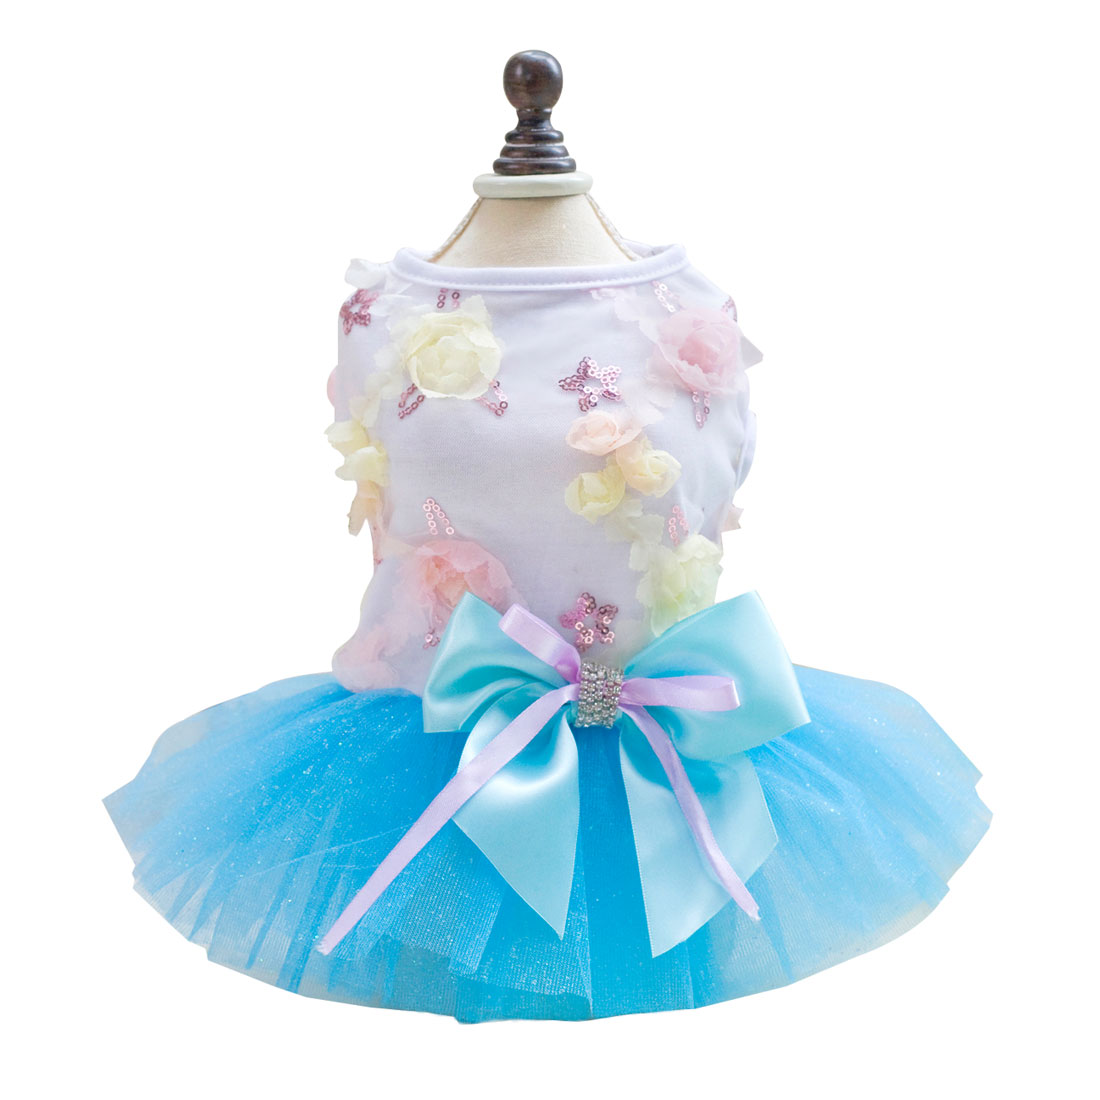 Pet Small Dog Dress Puppy Lace Princess Tutu Skirt Summer Costume Blue S